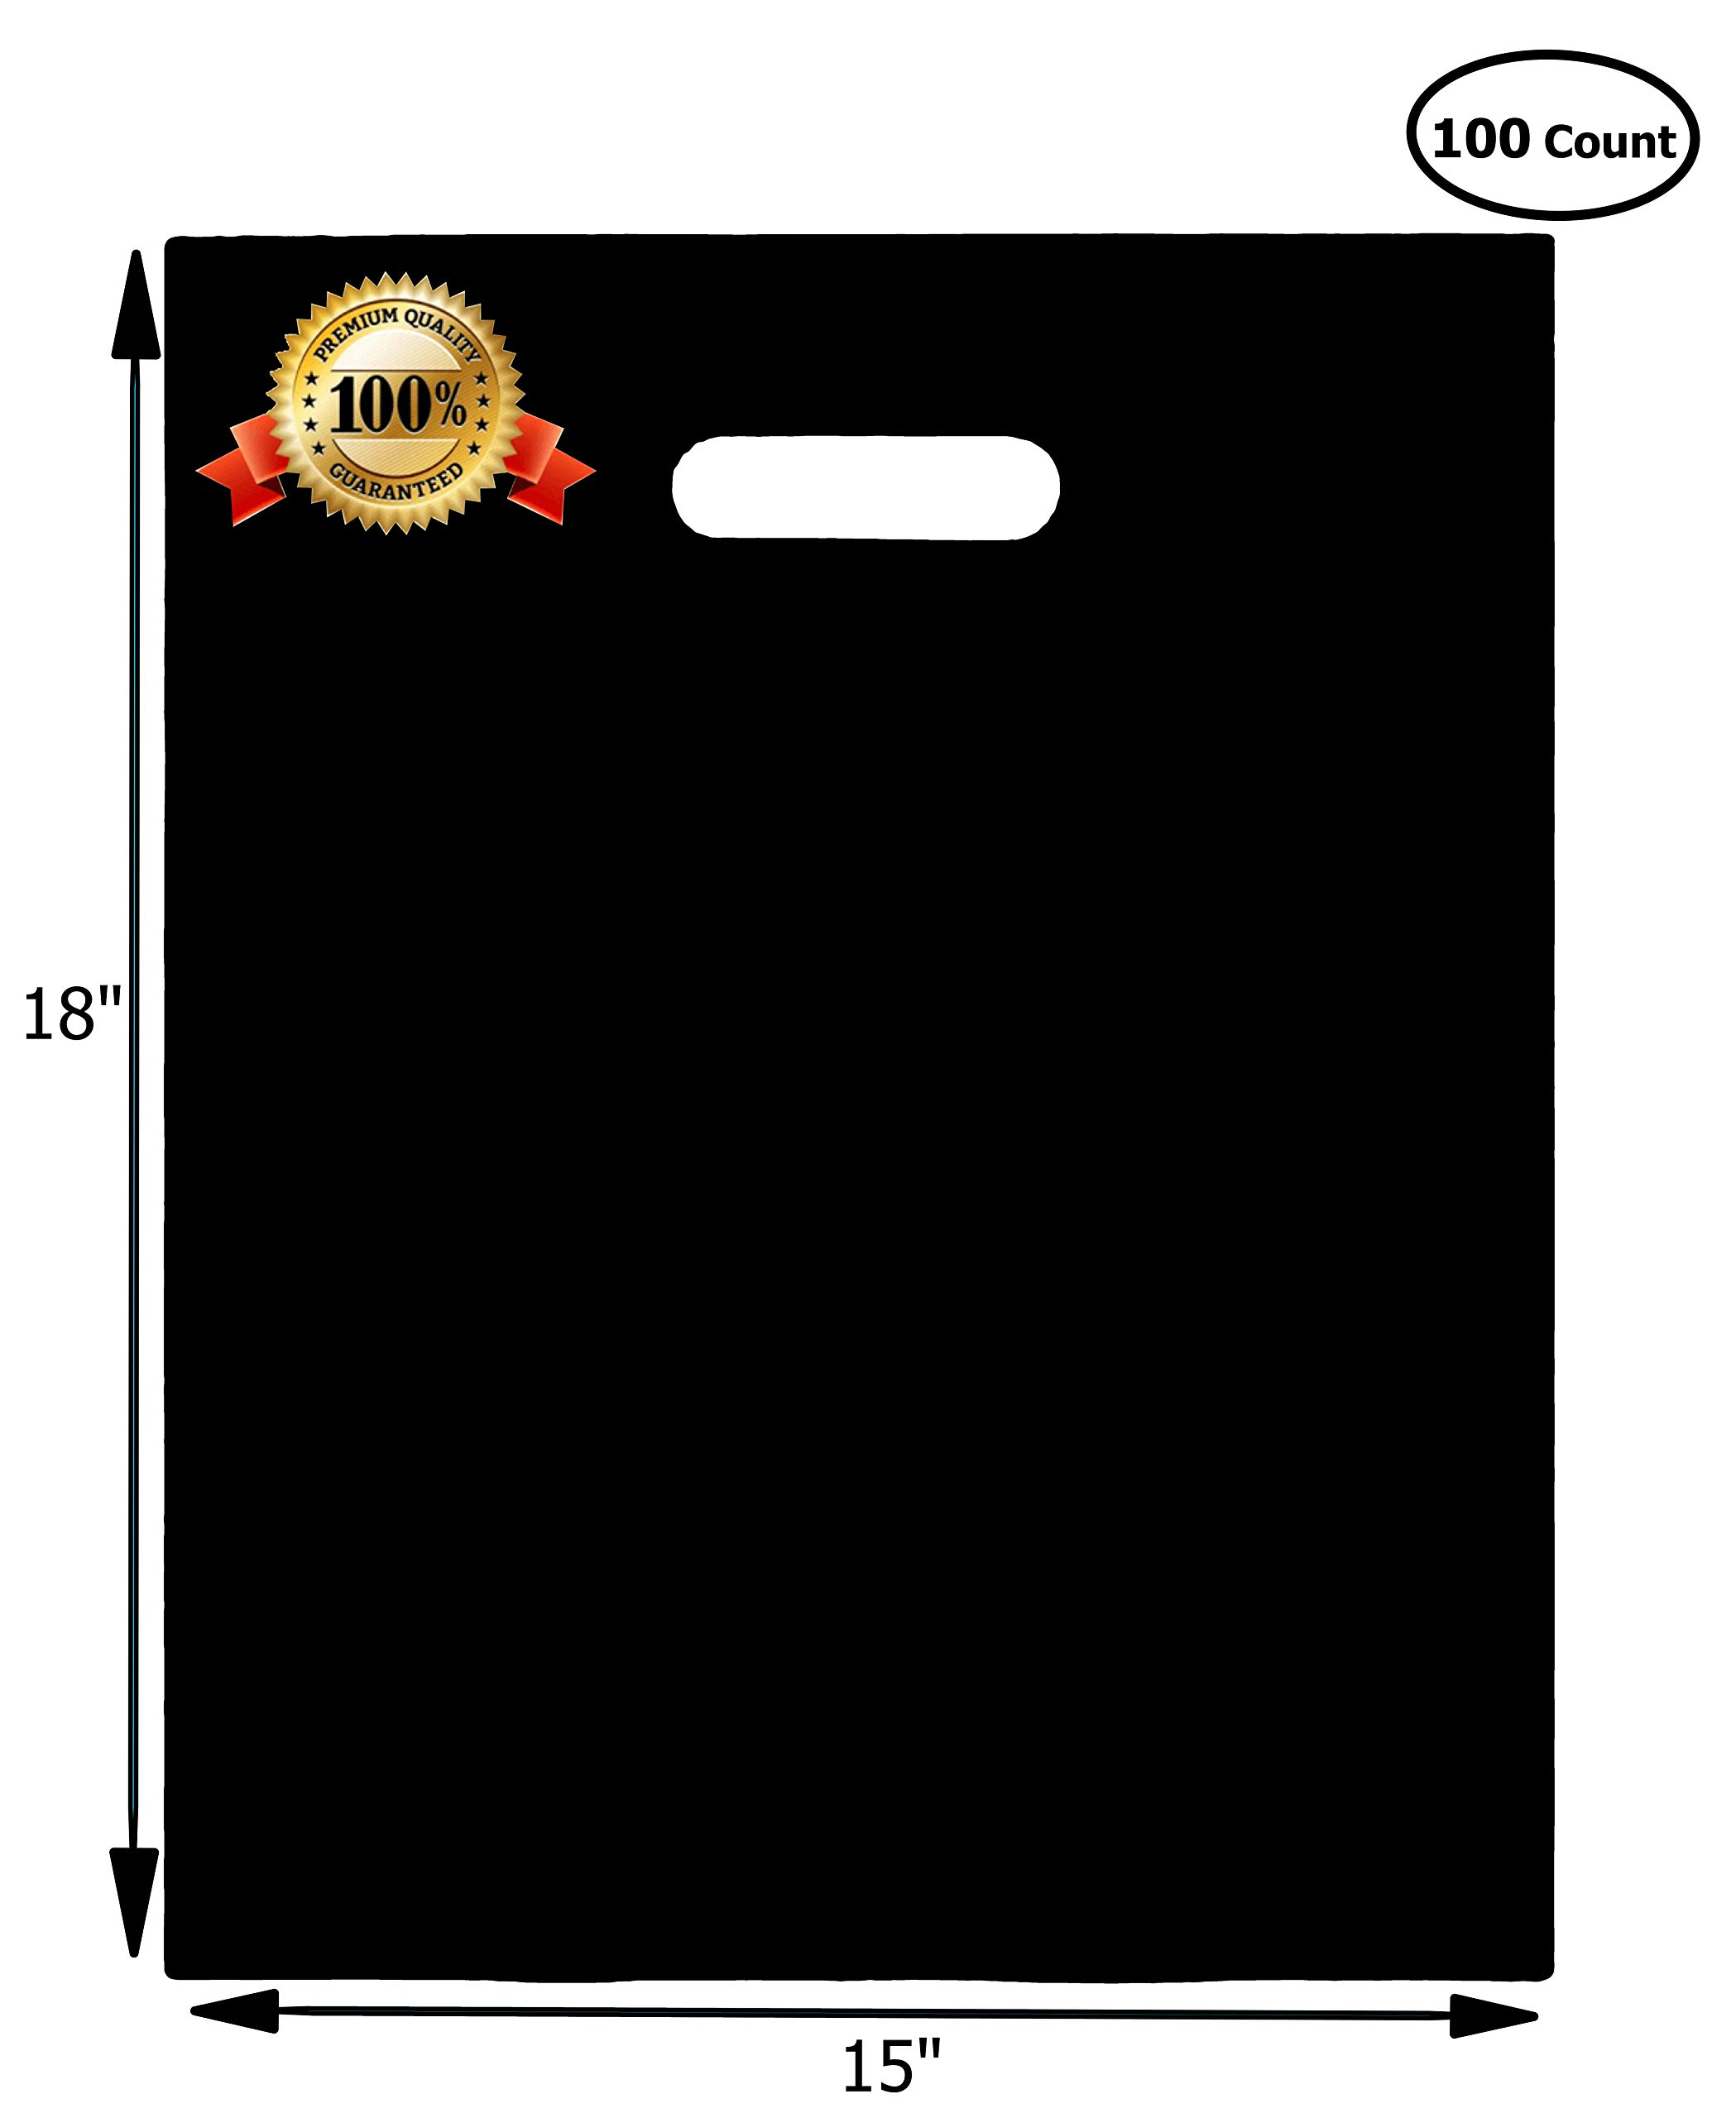 100 Merchandise Bags 15x18 Black, Die Cut Handles, Gusset, 1.25 Mil. Strong, Durable, and Tear Resistant Bags Perfect for Retail, Boutiques or Events